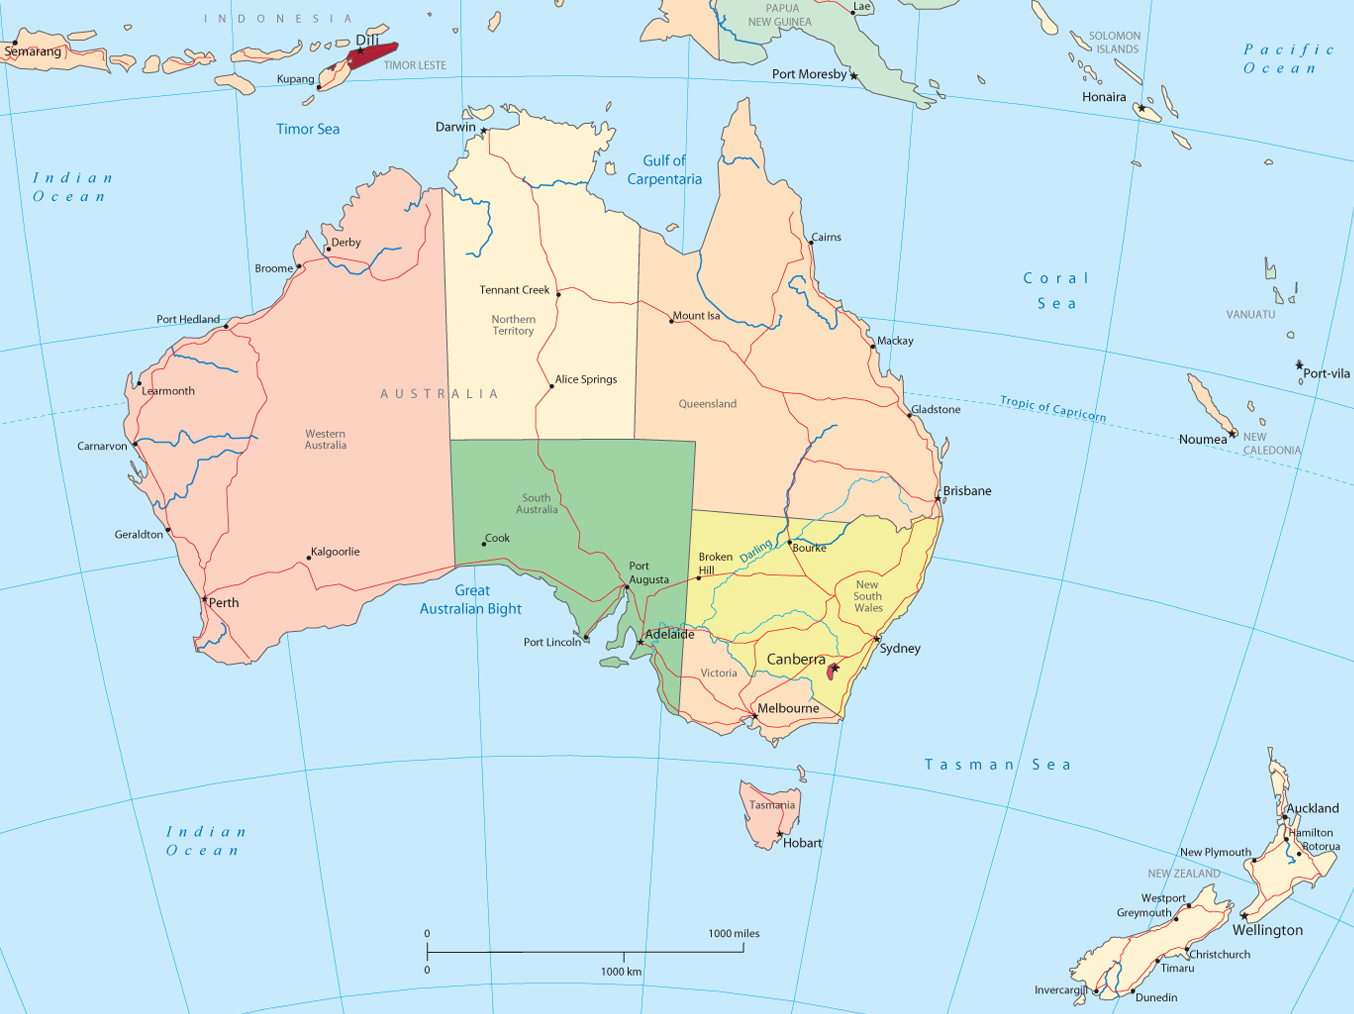 New Zealand Map On World.Australia And New Zealand Political Map